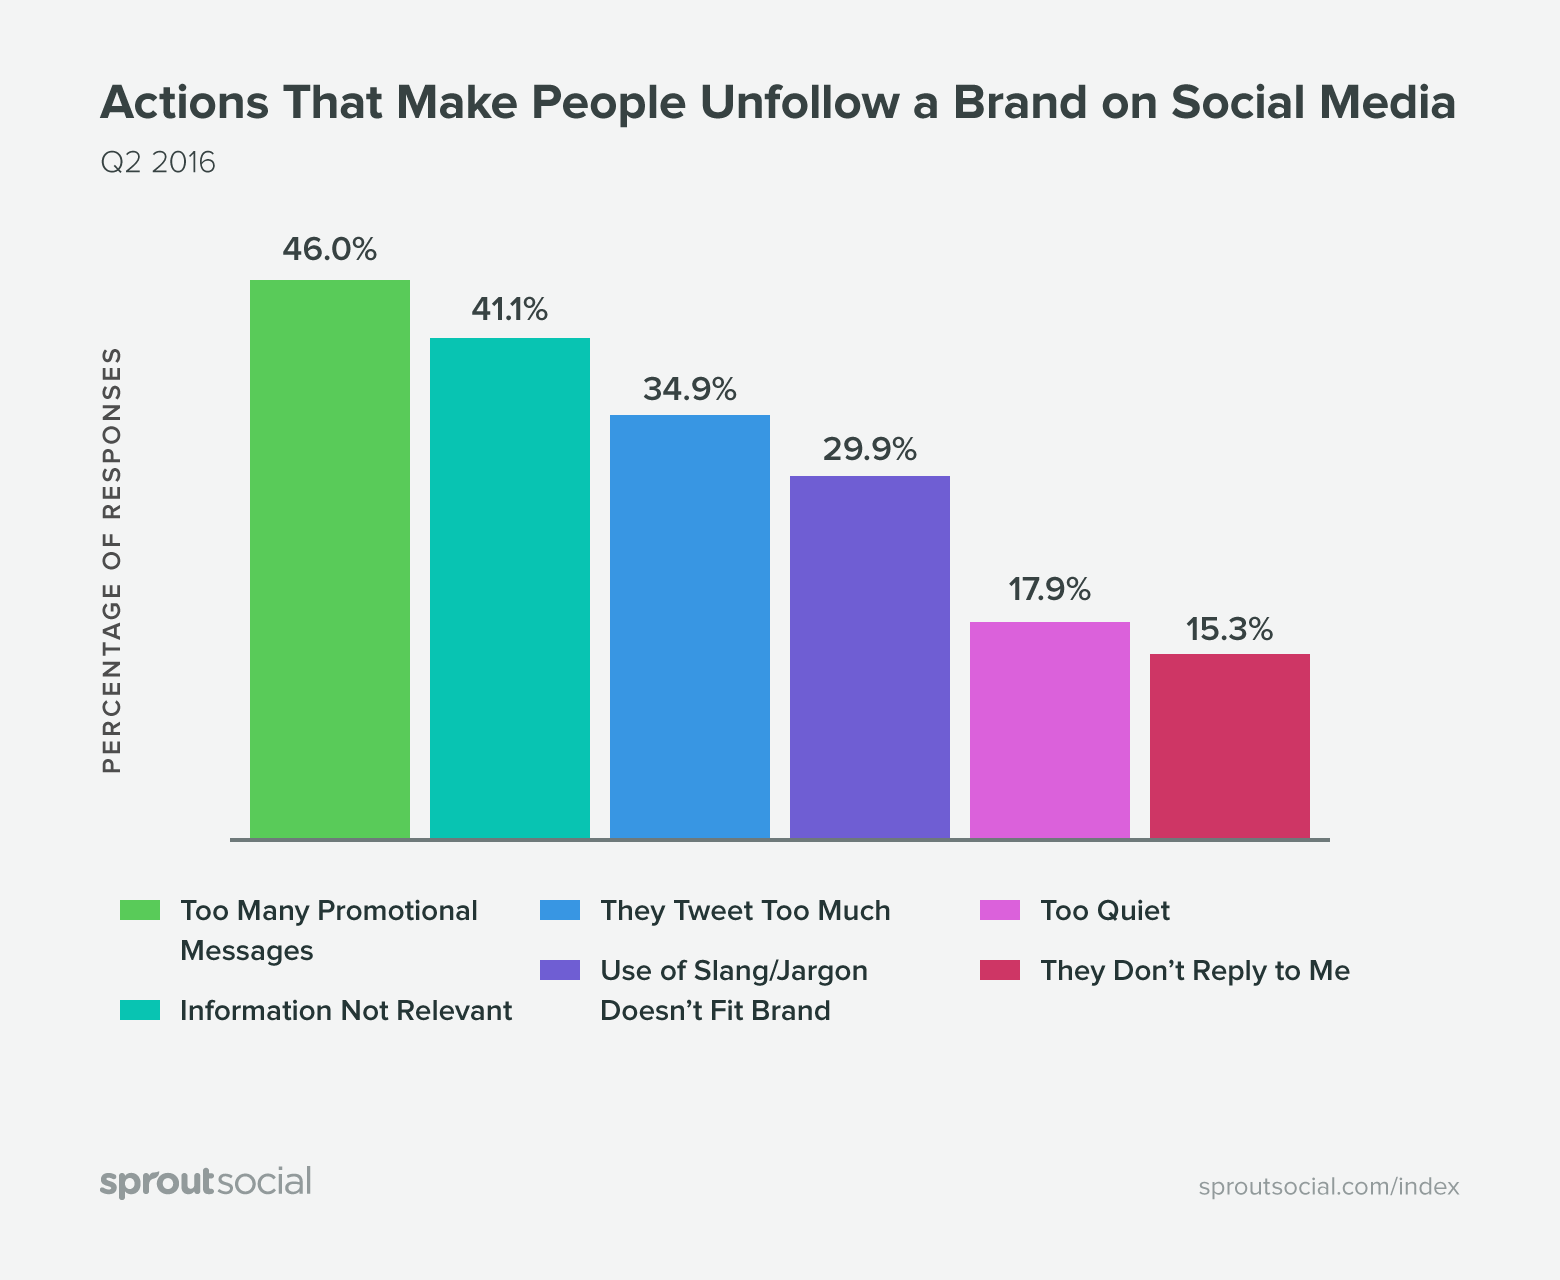 actions that make people unfollow a brand on social media